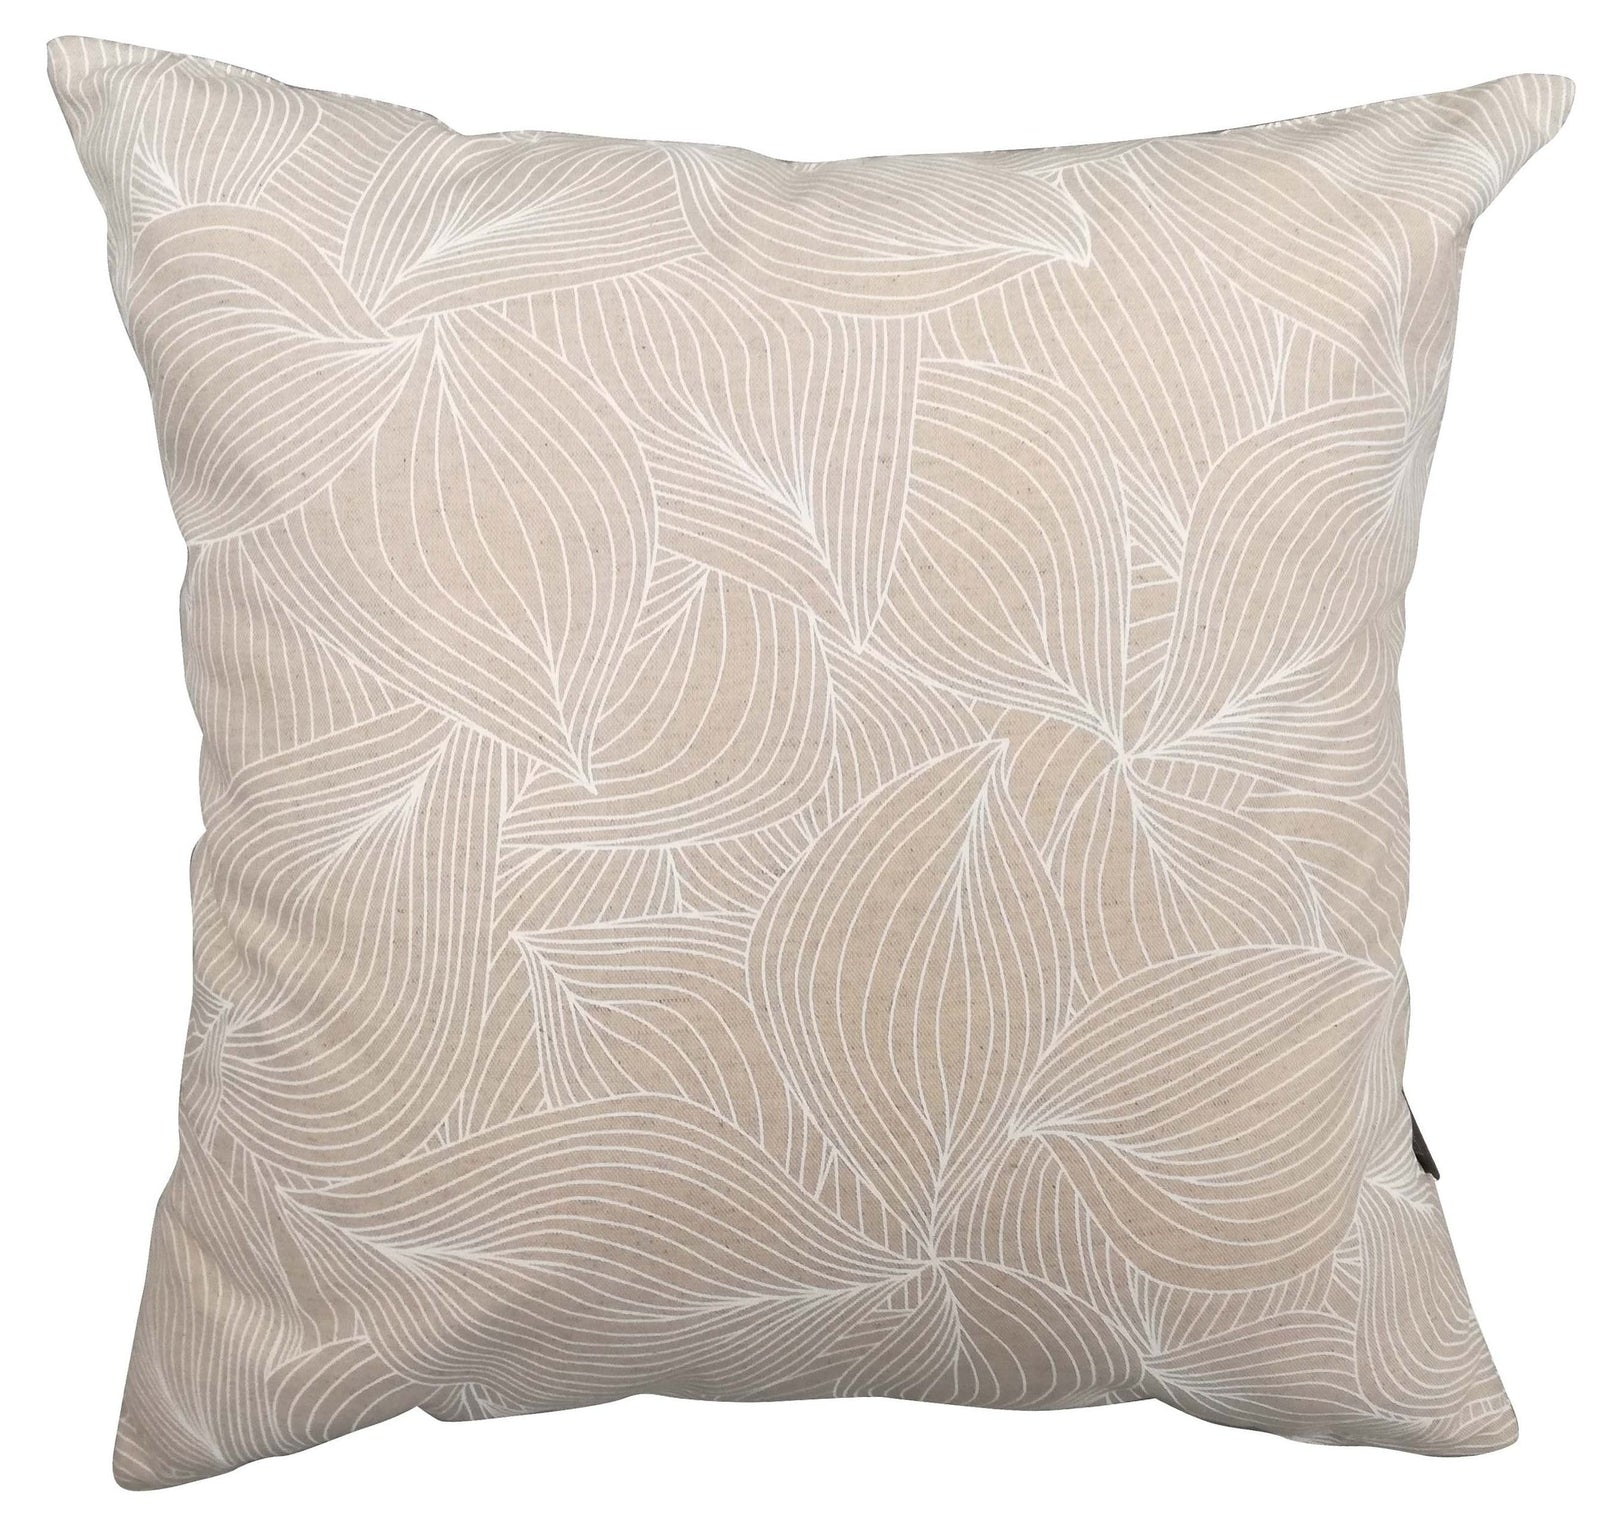 Lilium White on Natural Cushion Cover